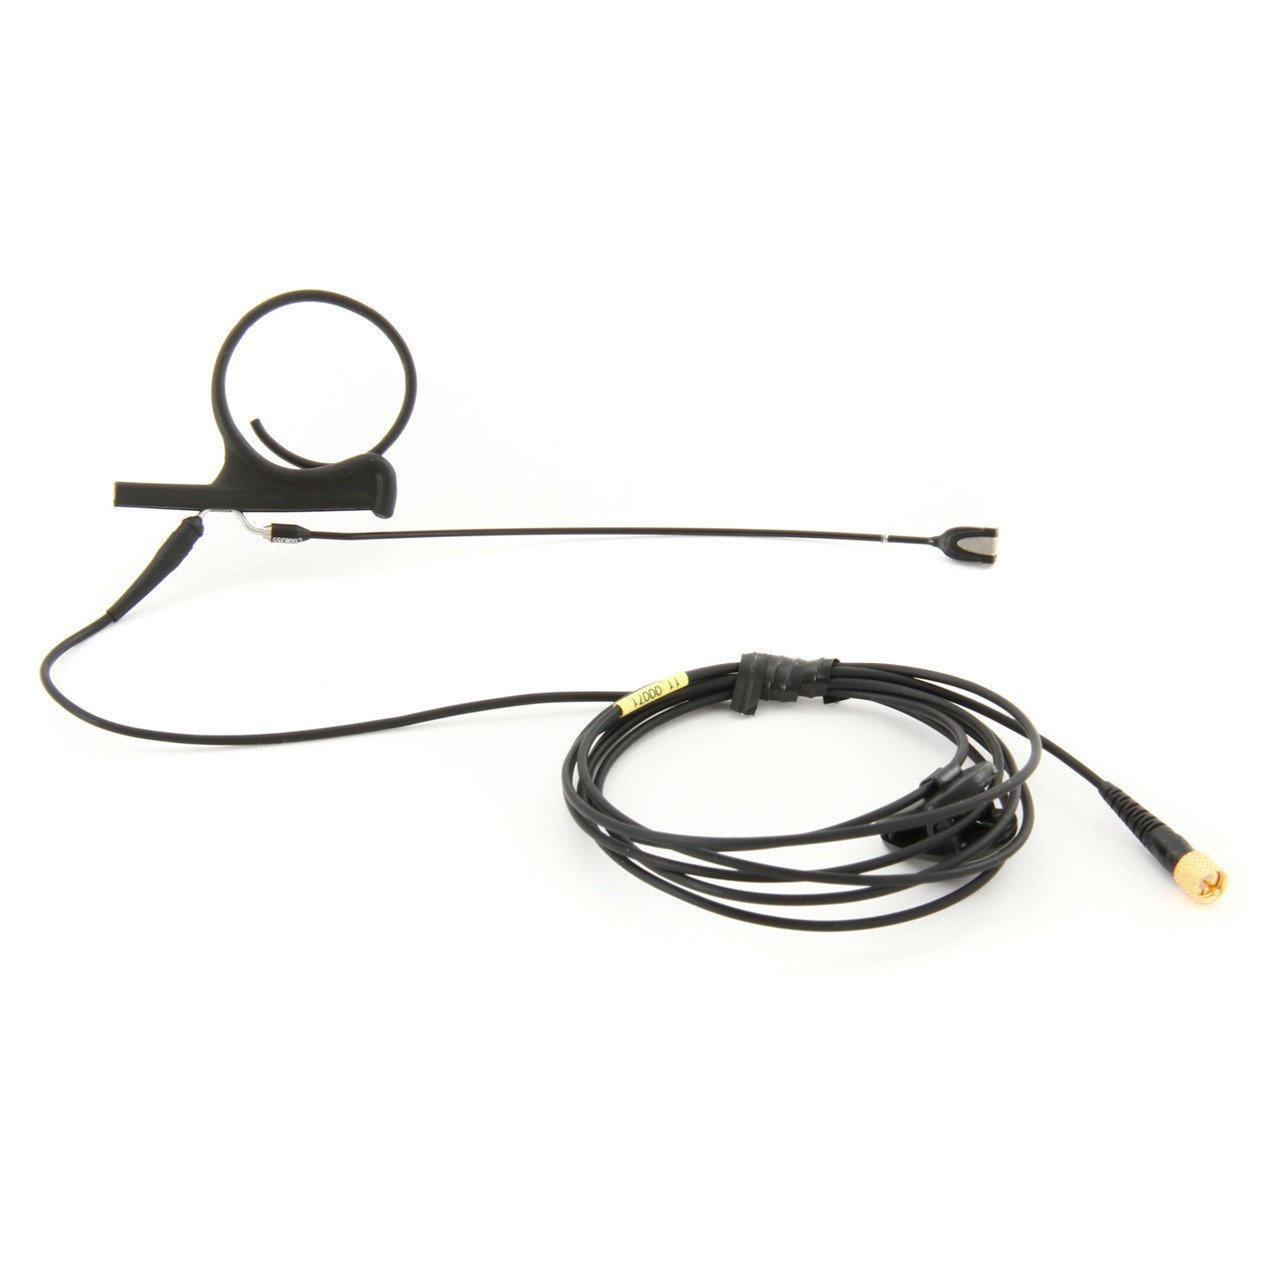 DPA d:fine 66 Single-ear Omnidirectional Headset Microphone